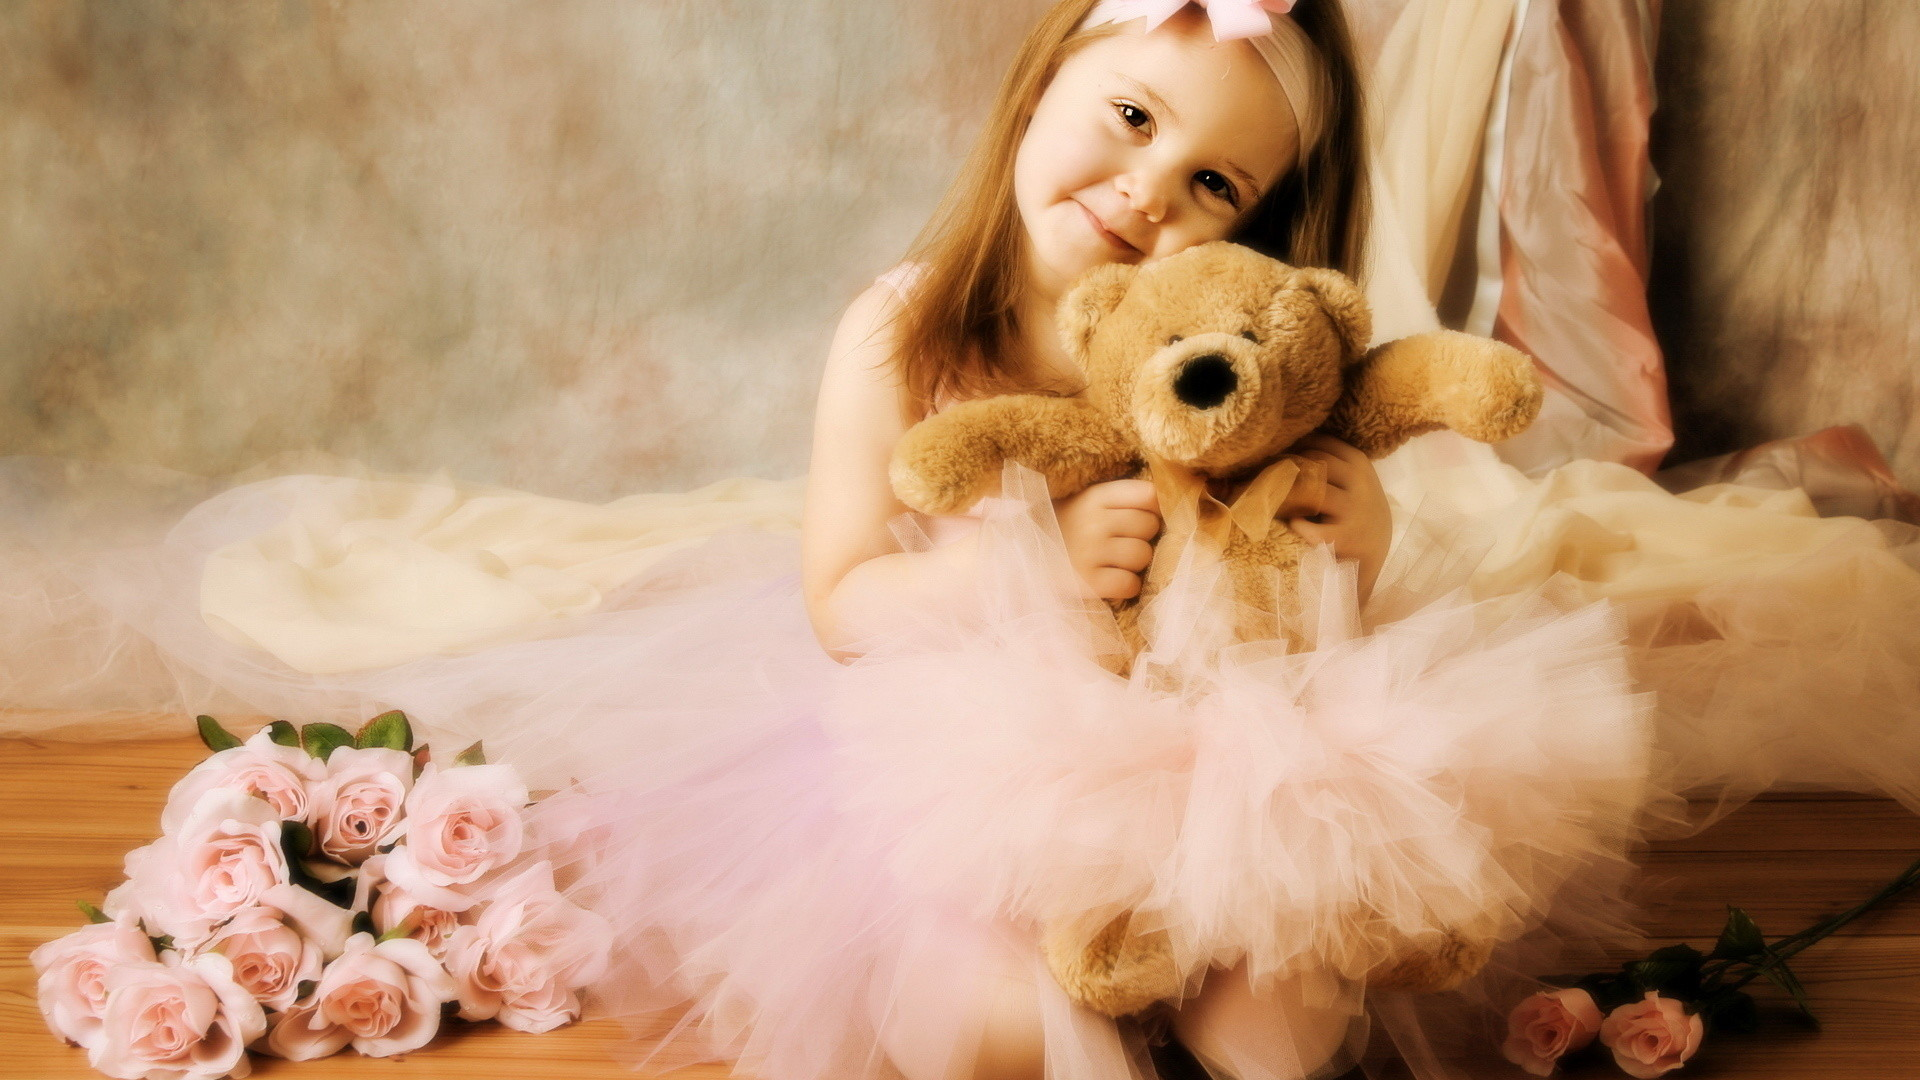 Images Of Cute Girls Wallpapers Wallpapers)